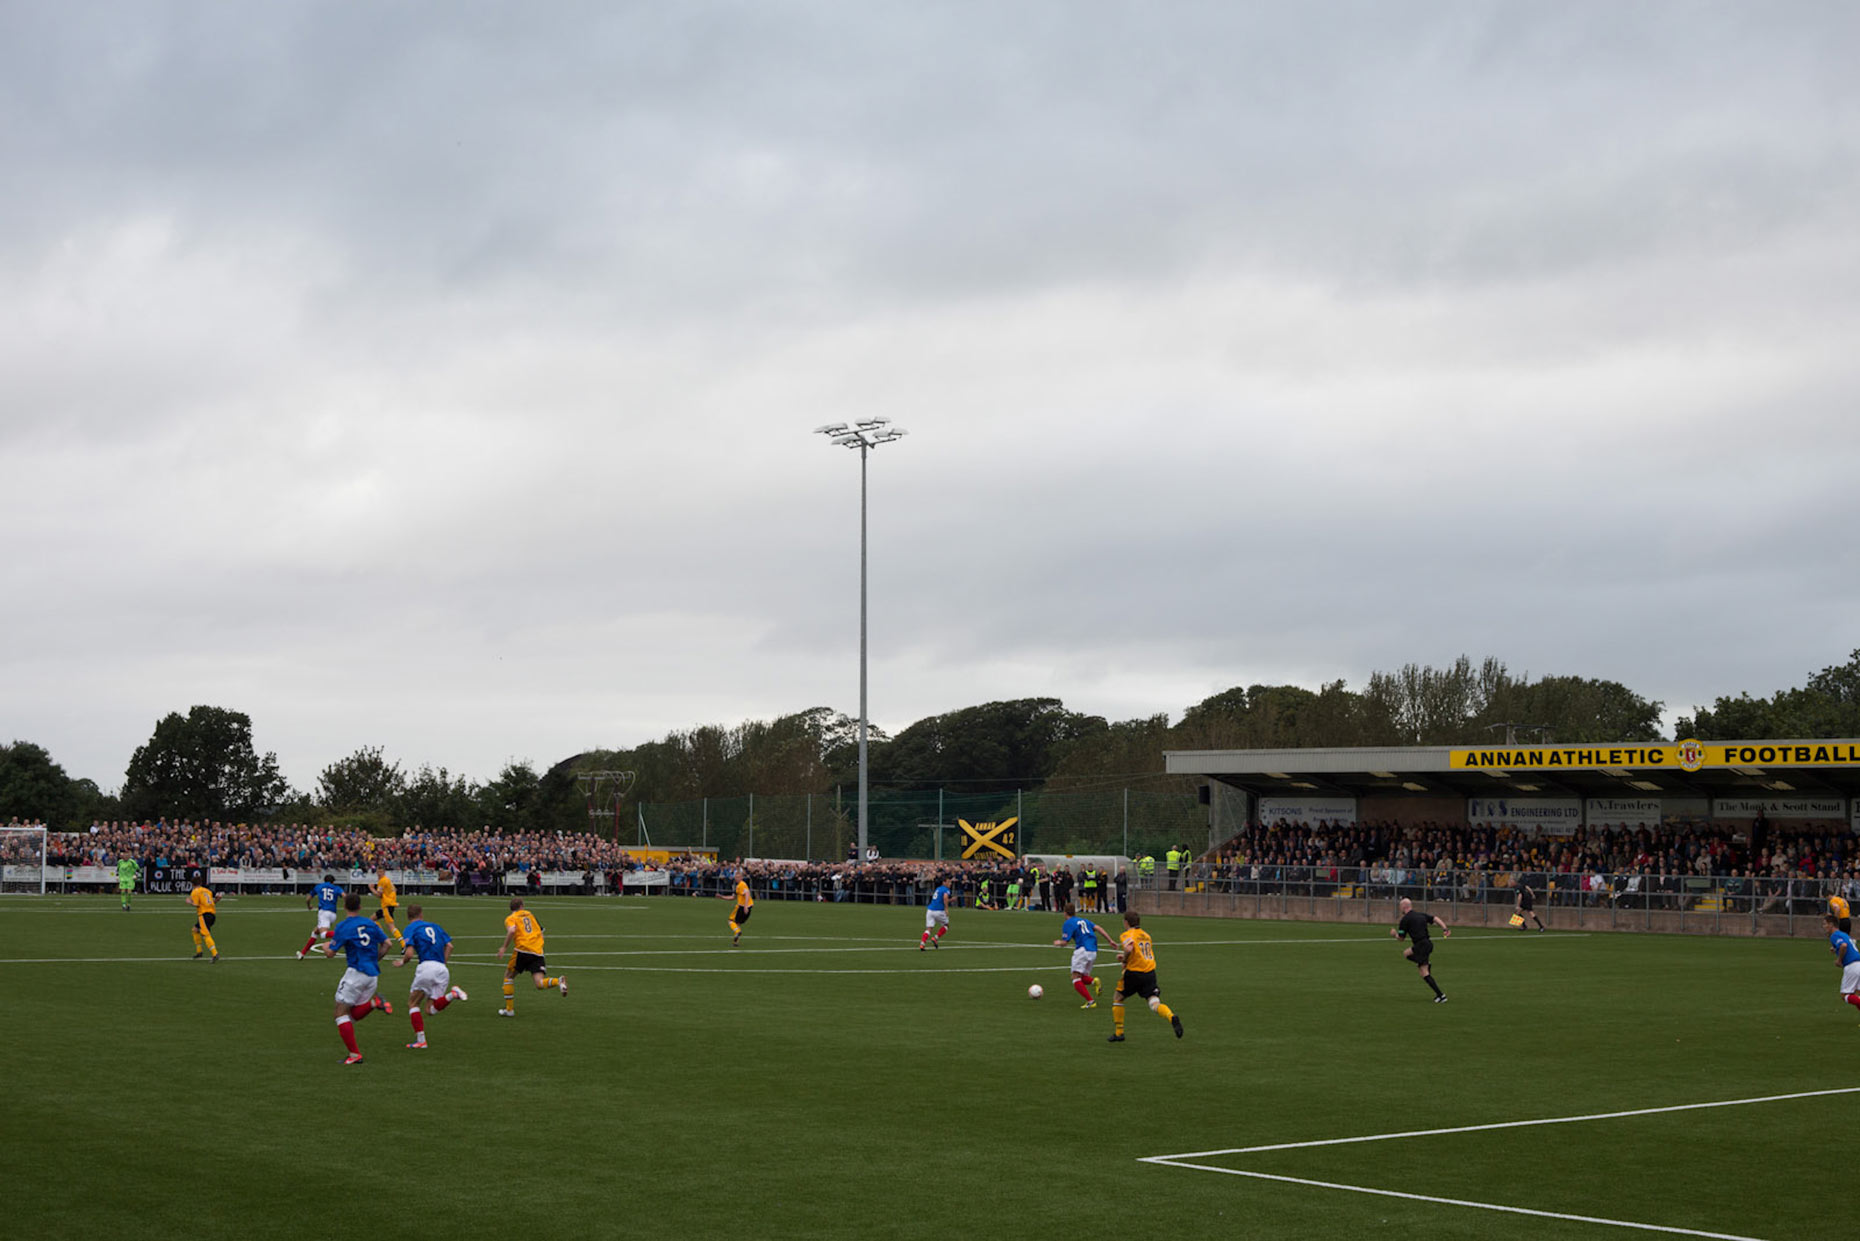 Rangers FC  in Annan, Scotland, by photographer Sutton-Hibbert